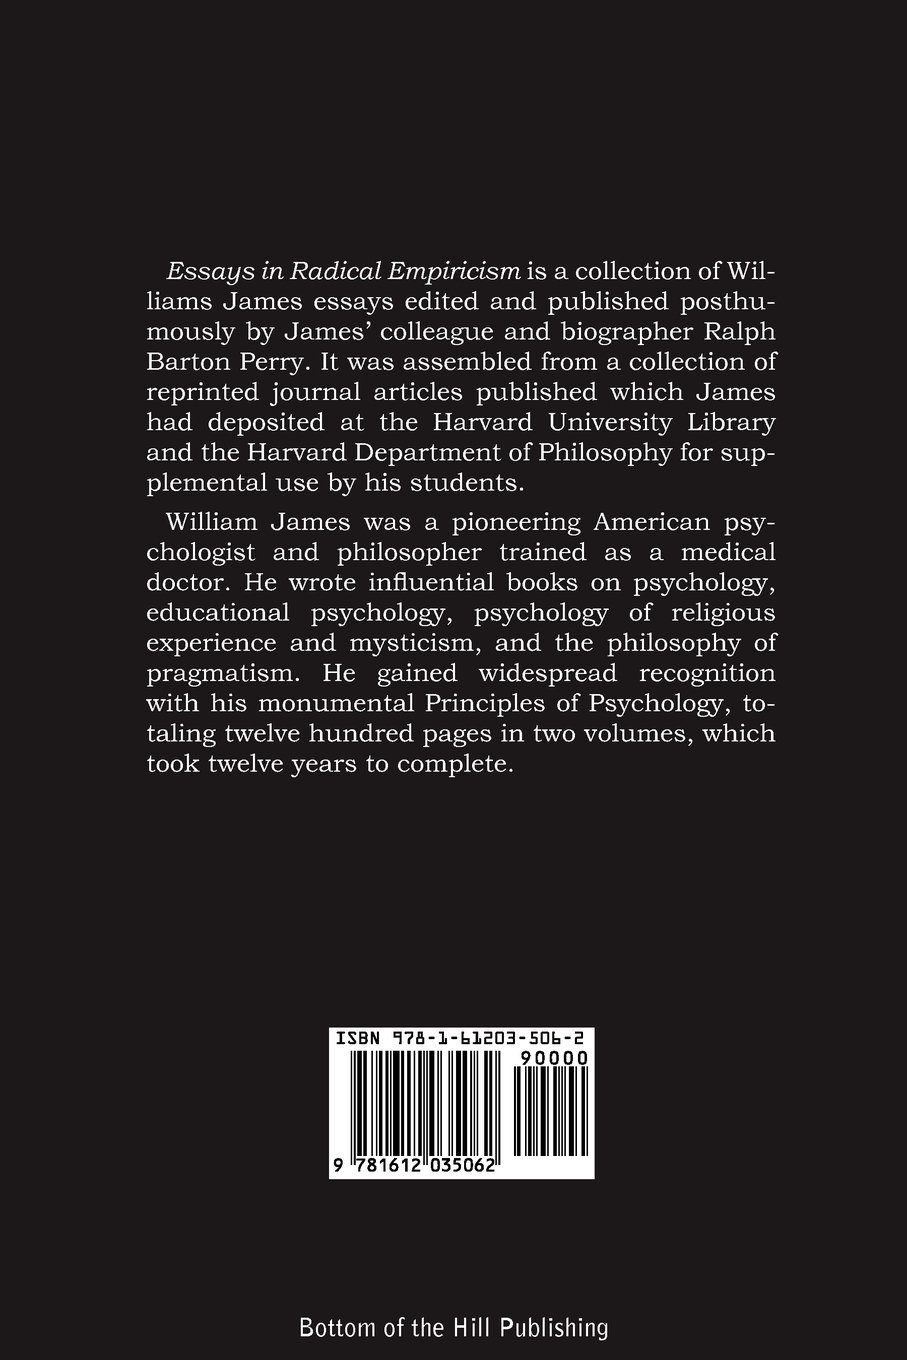 essays in radical empiricism william james amazon essays in radical empiricism william james 9781612035062 com books